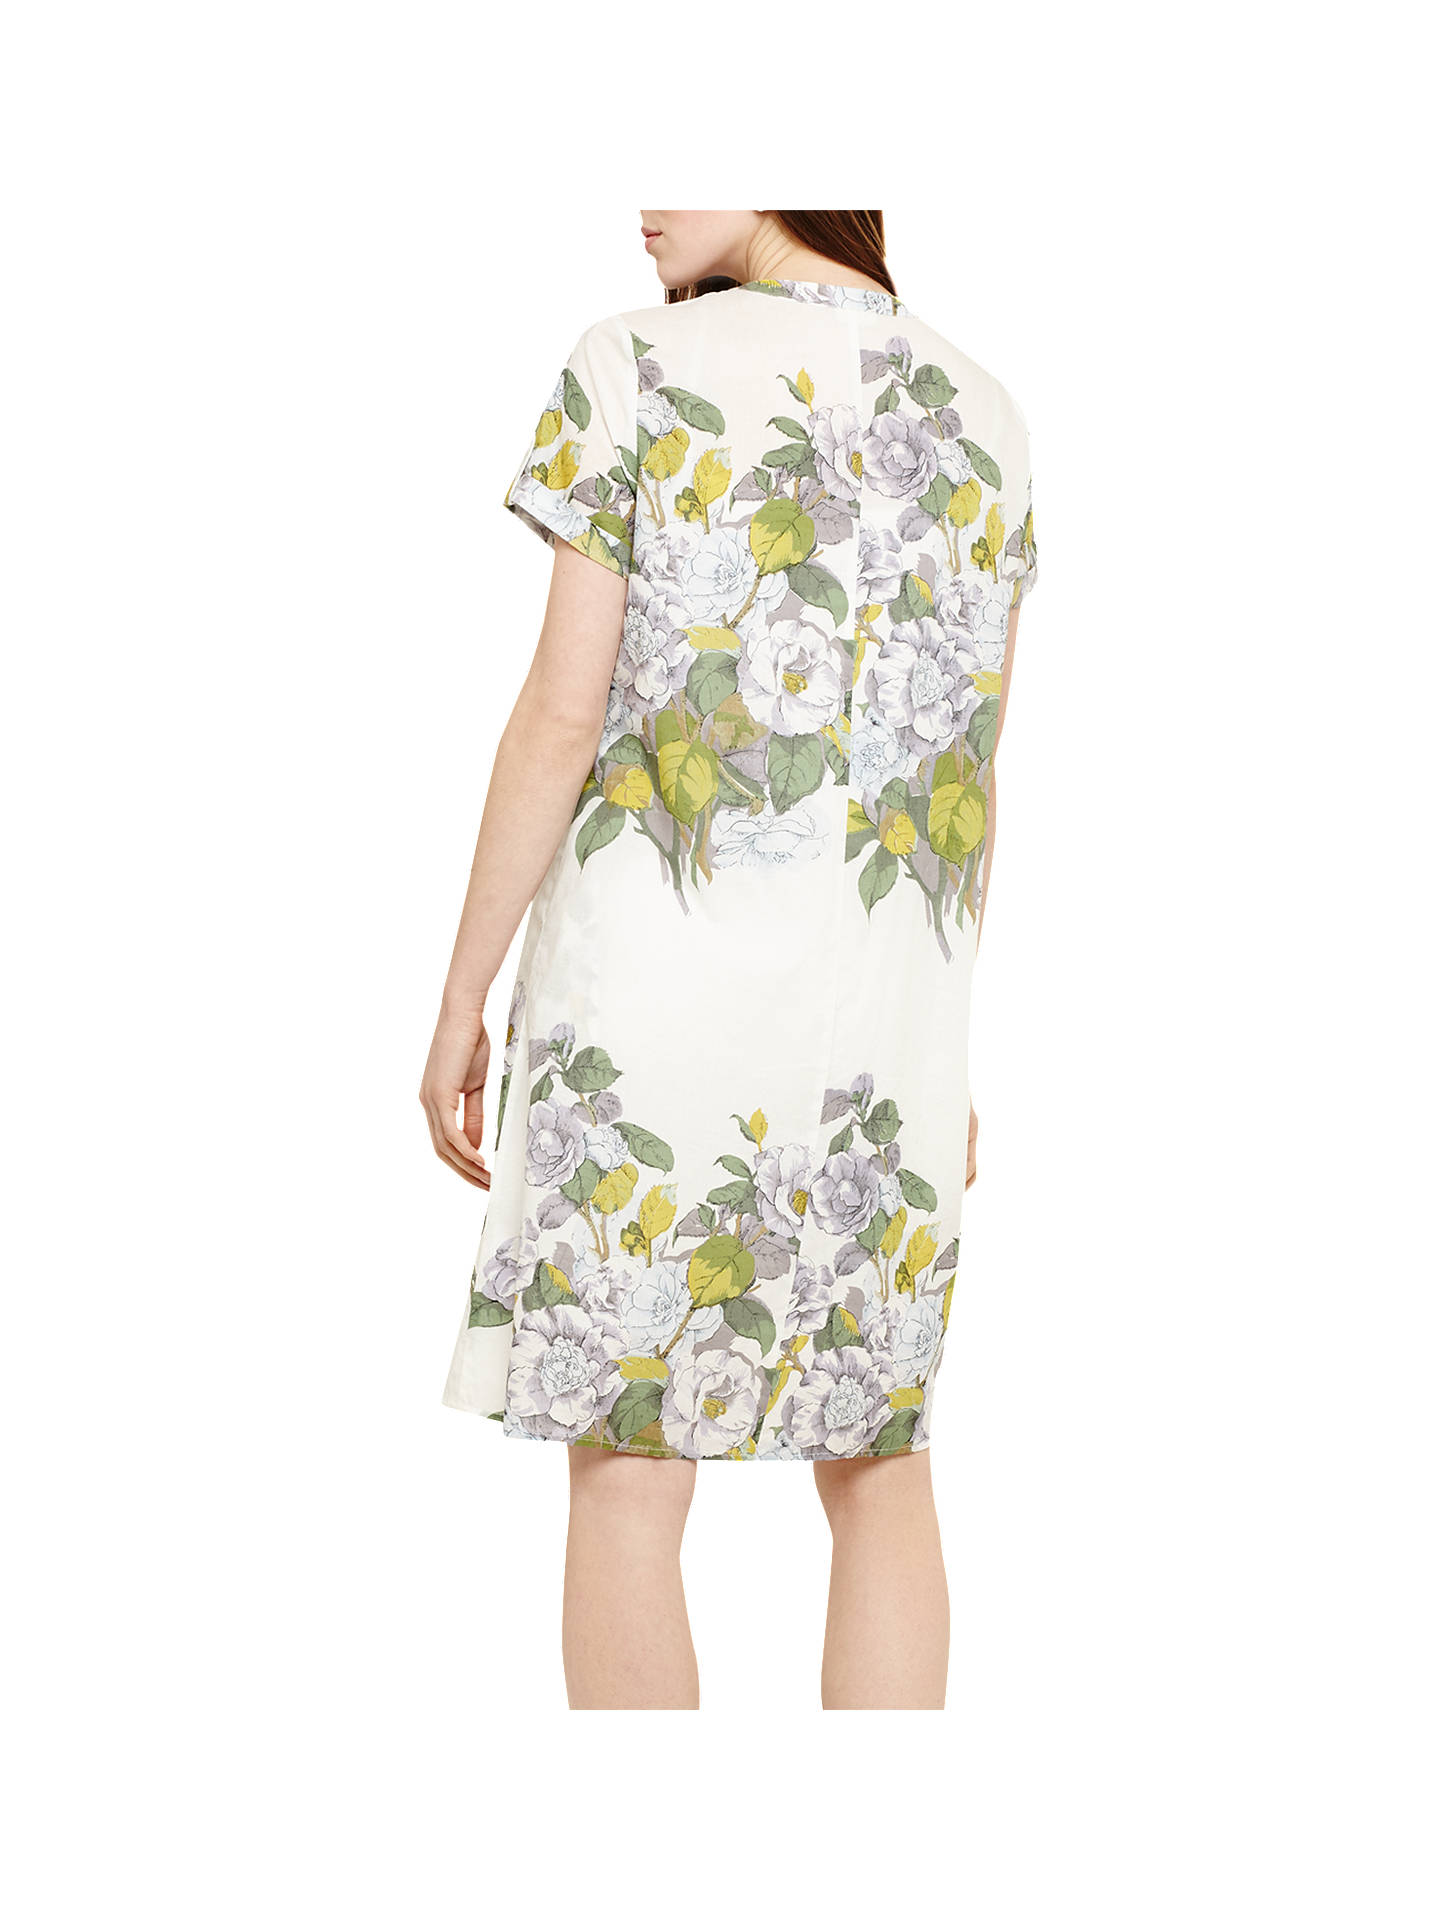 BuyPhase Eight Samara Floral Dress, Ivory/Multi, 8 Online at johnlewis.com